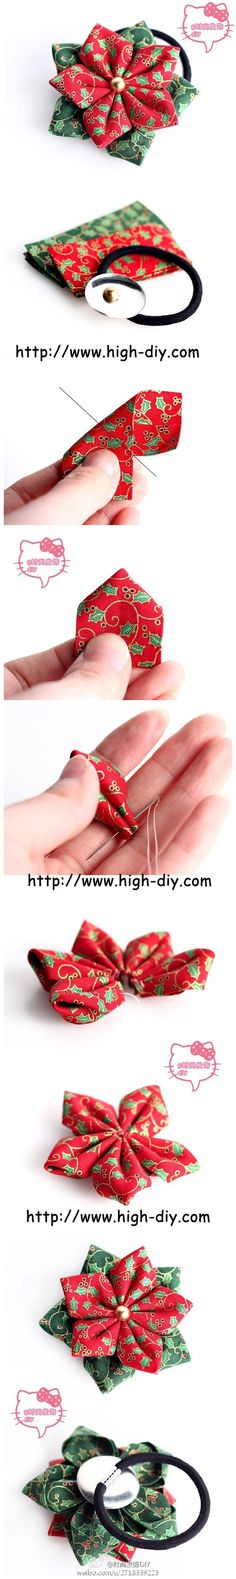 [Chinese] Kanzashi-like flower hair band. I can't understand the text, but the photo tutorial is quite straight-forward! Folded Fabric Ornaments, Quilted Ornaments, Xmas Ornaments, Ribbon Crafts, Flower Crafts, Fabric Crafts, Sewing Crafts, Handmade Flowers, Diy Flowers